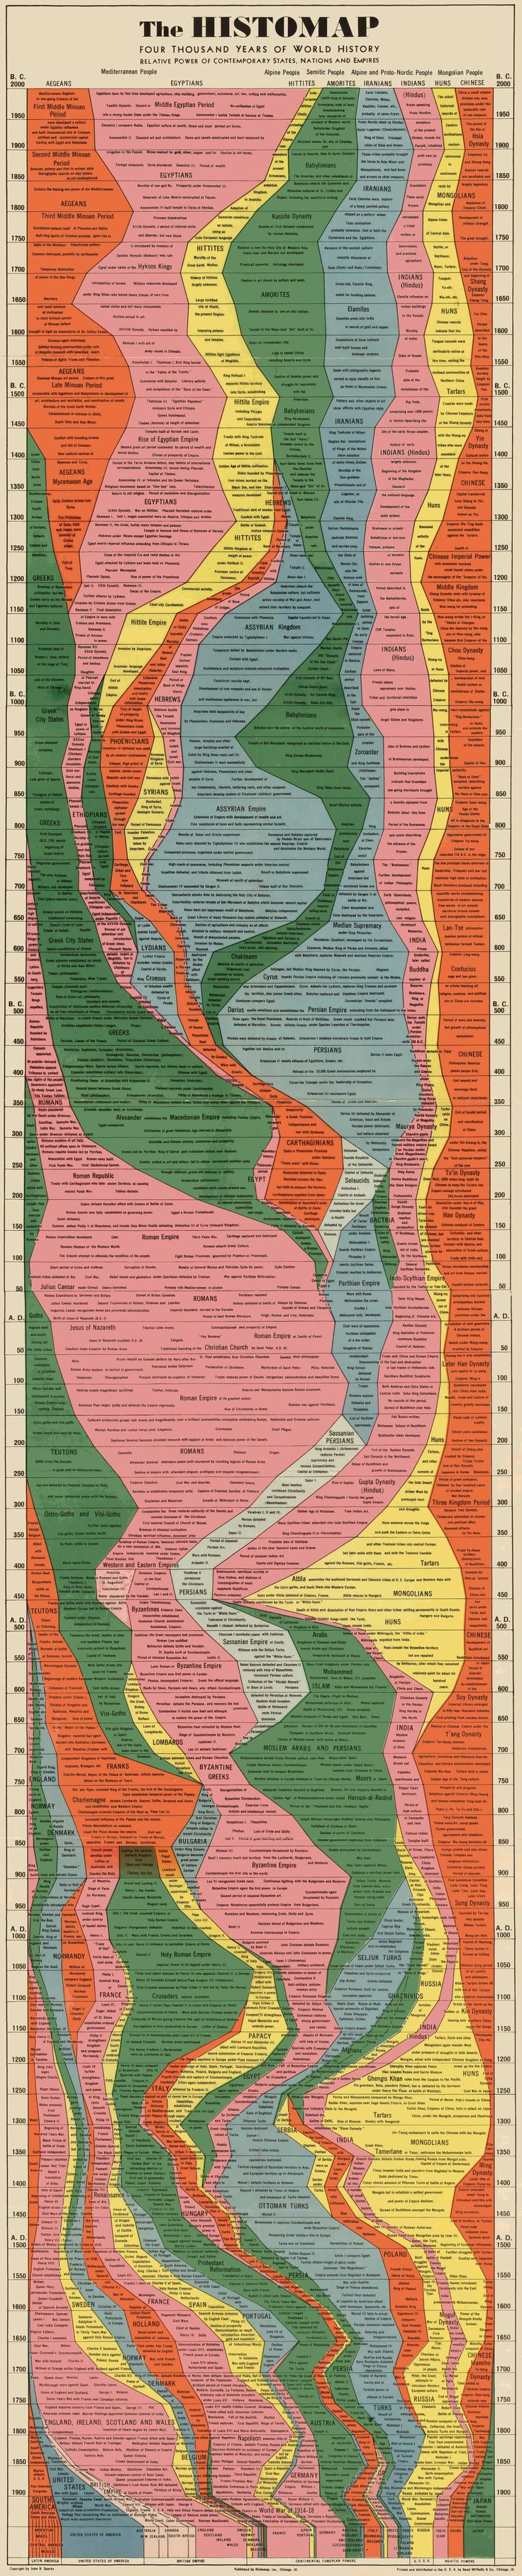 John B. Sparks' 1931 Histomap charted 4,000 years of human civilization with beautiful, reductive clarity